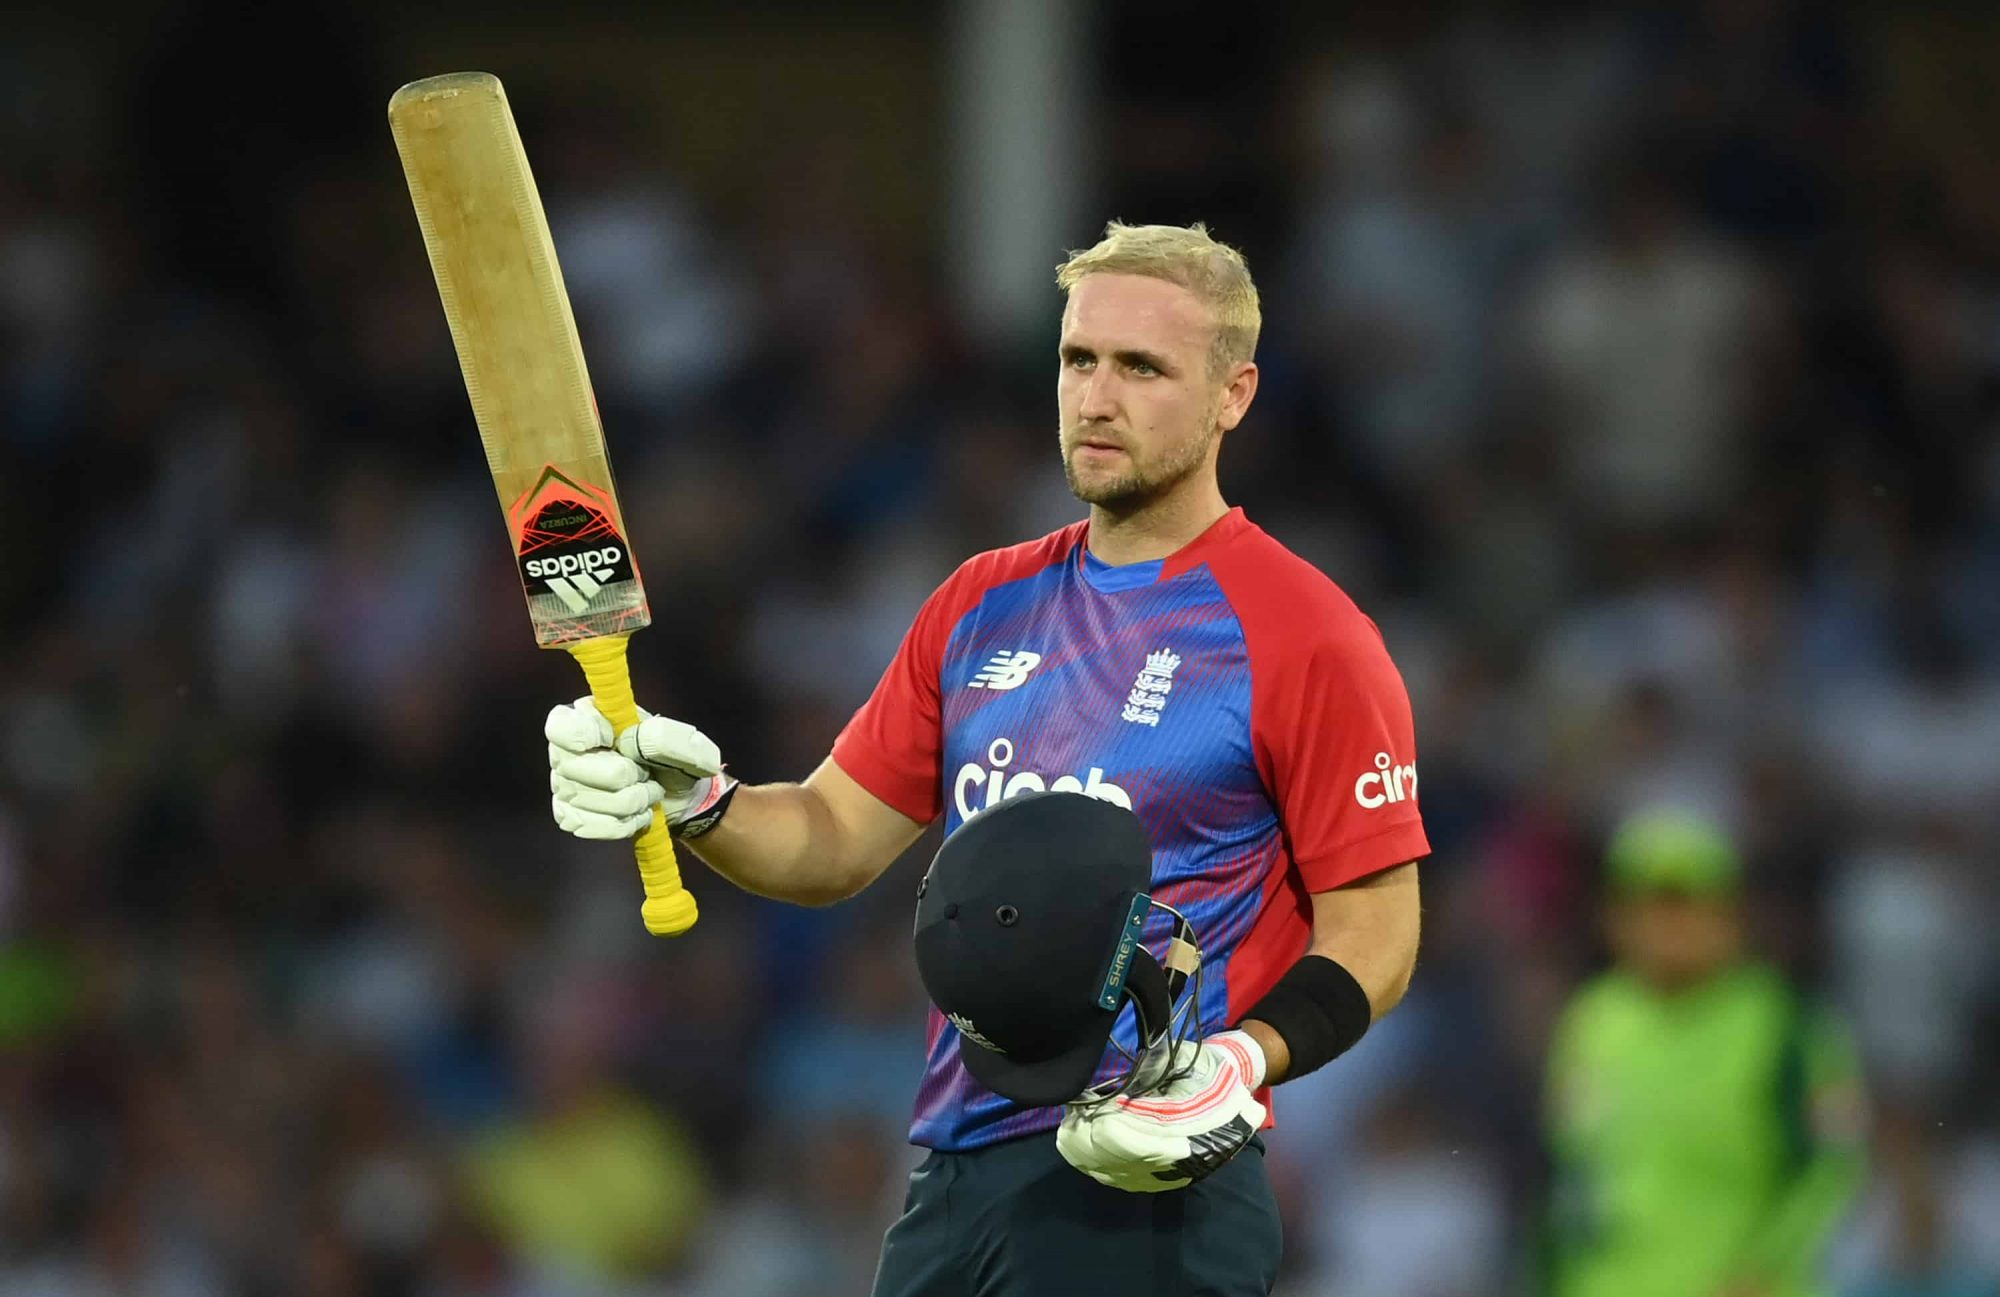 ENG vs PAK: Liam Livingstone's Fastest Hundred In Vain As Pakistan Beats England By 31 Runs In 1st T20